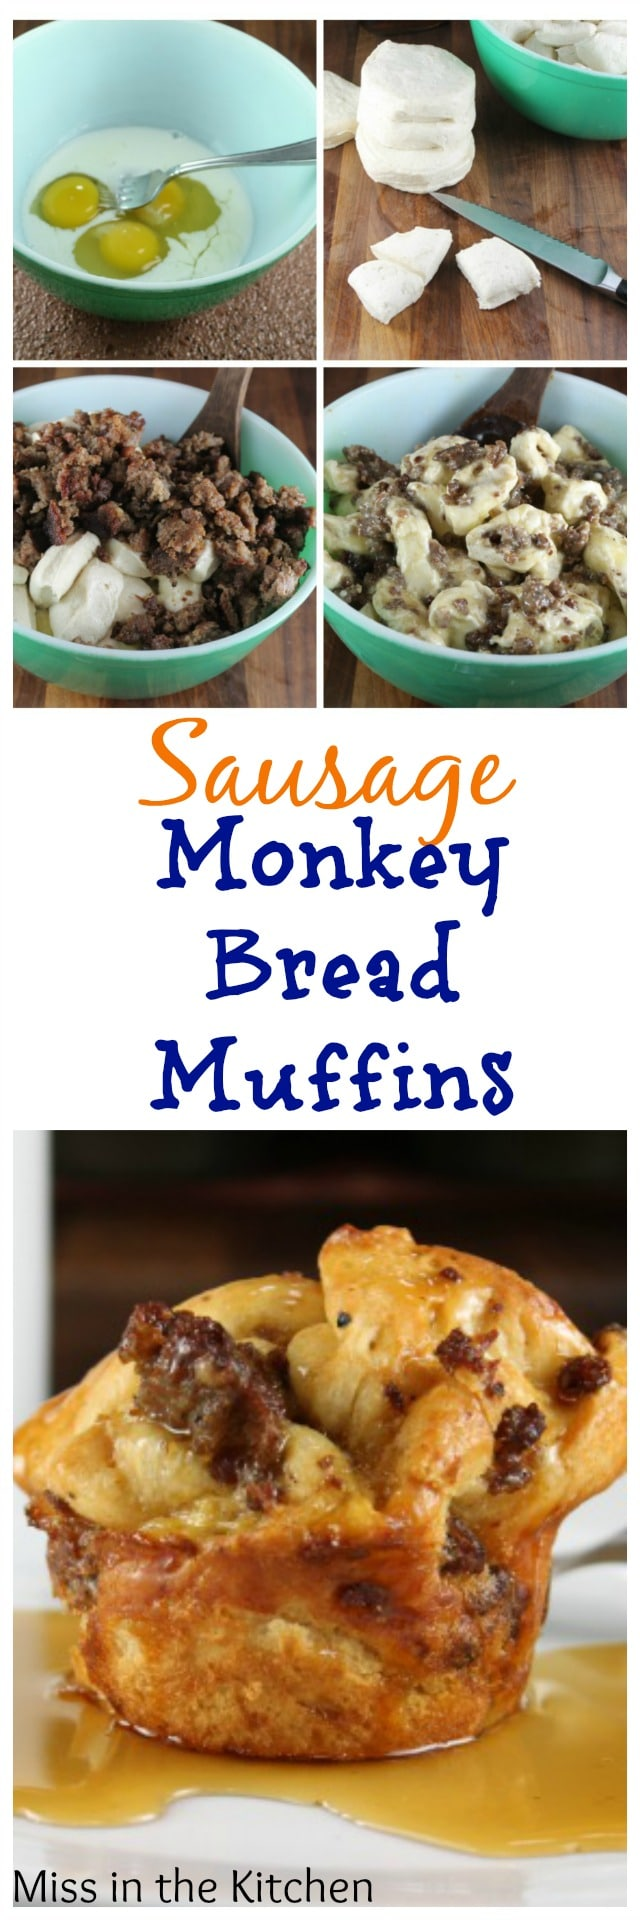 Sausage Monkey Bread Muffins Recipe from MissintheKitchen.com